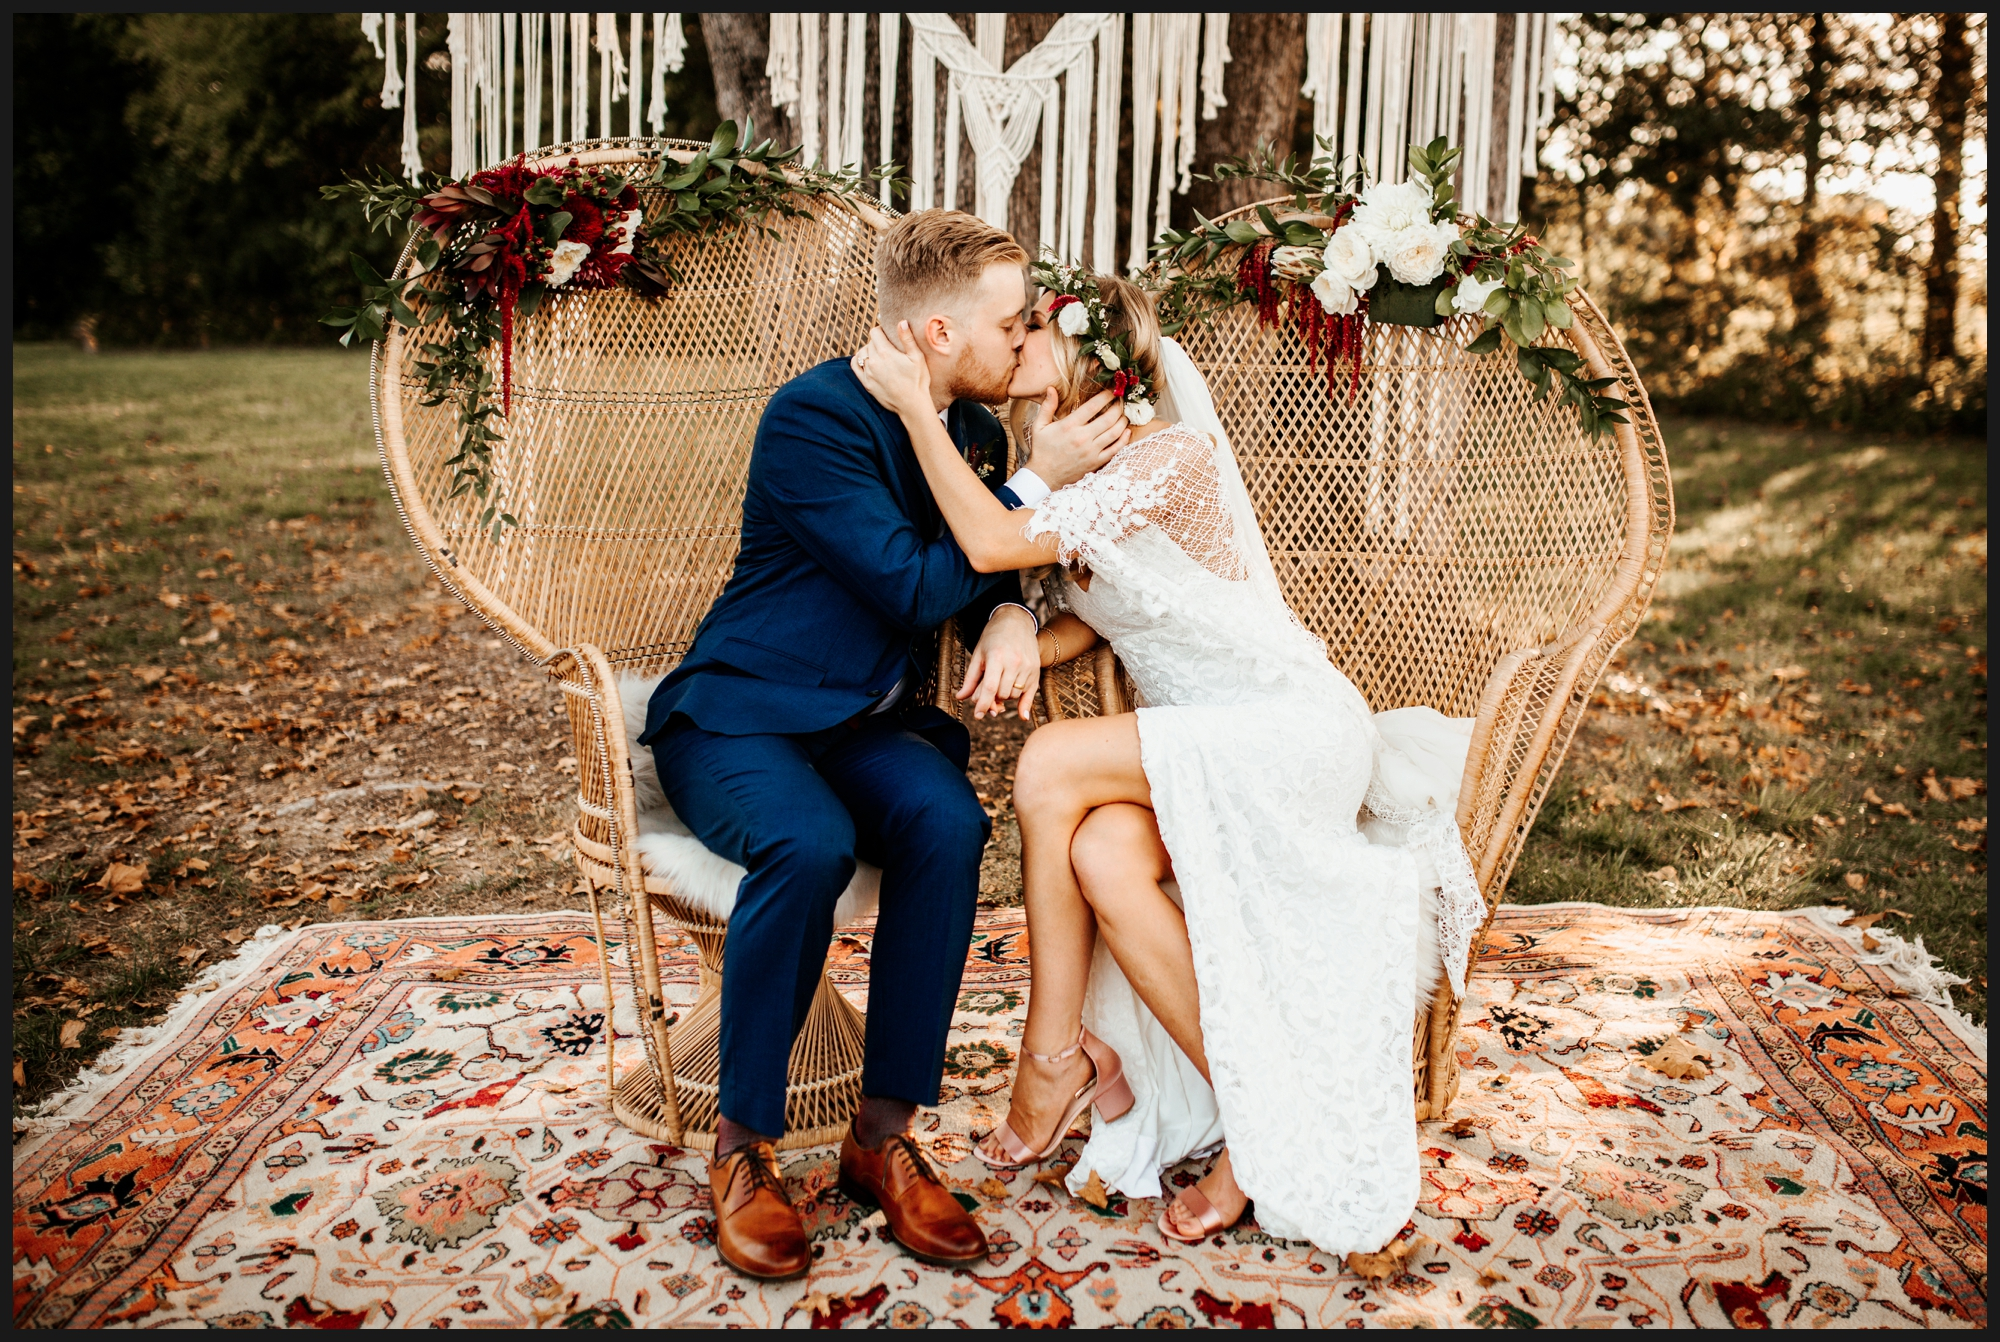 Orlando-Wedding-Photographer-destination-wedding-photographer-florida-wedding-photographer-bohemian-wedding-photographer_0176.jpg